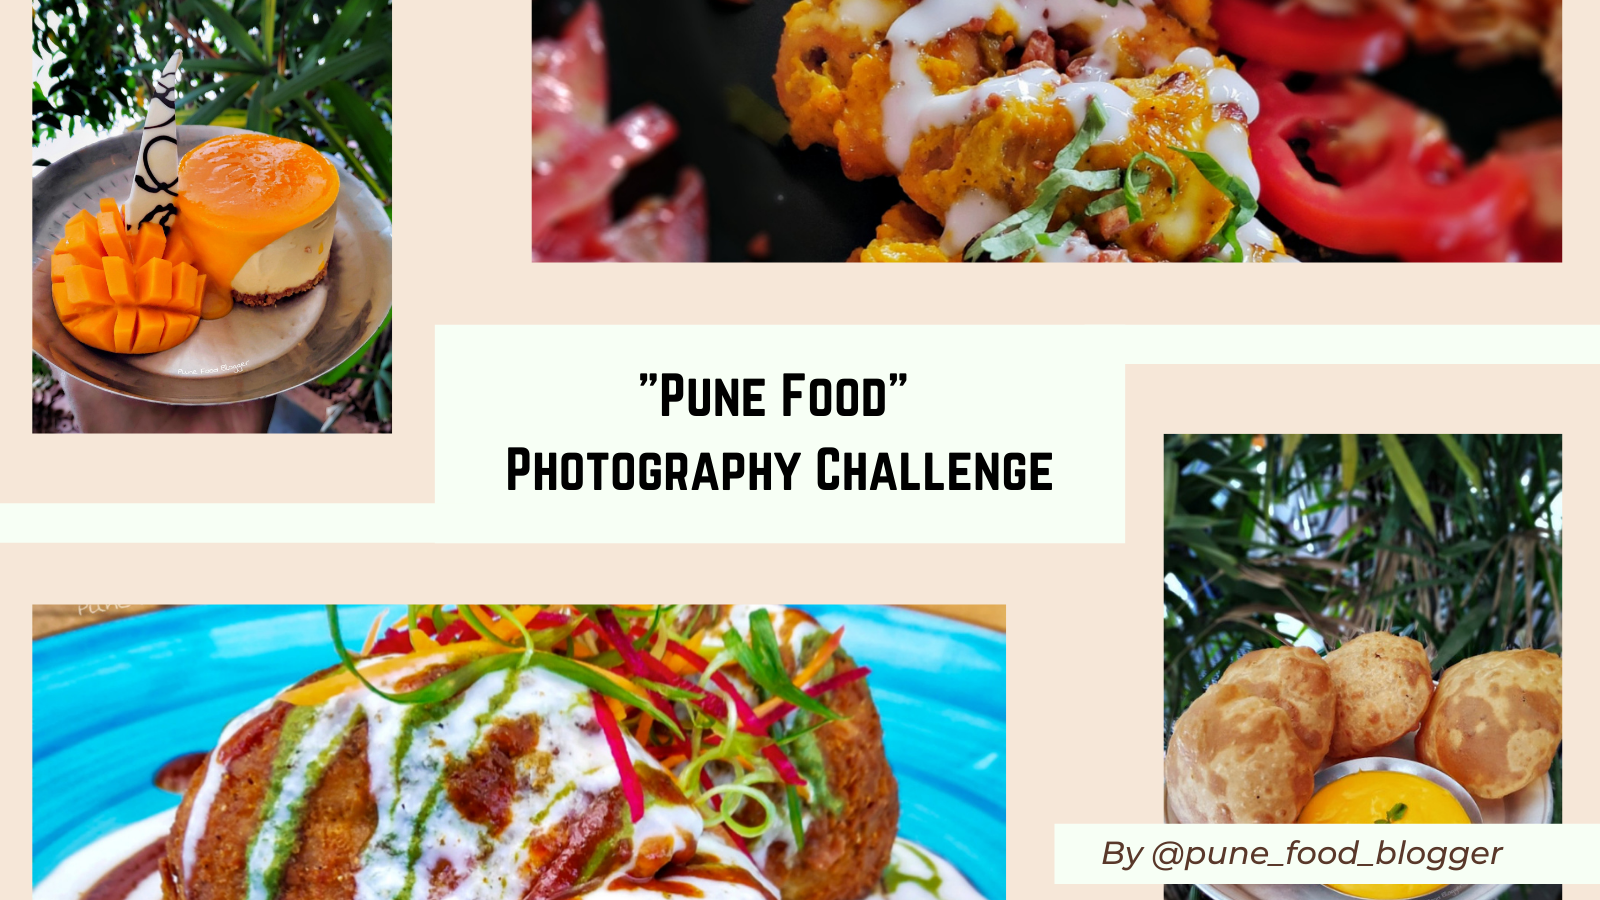 """Pune Food"" - Photography Challenge"